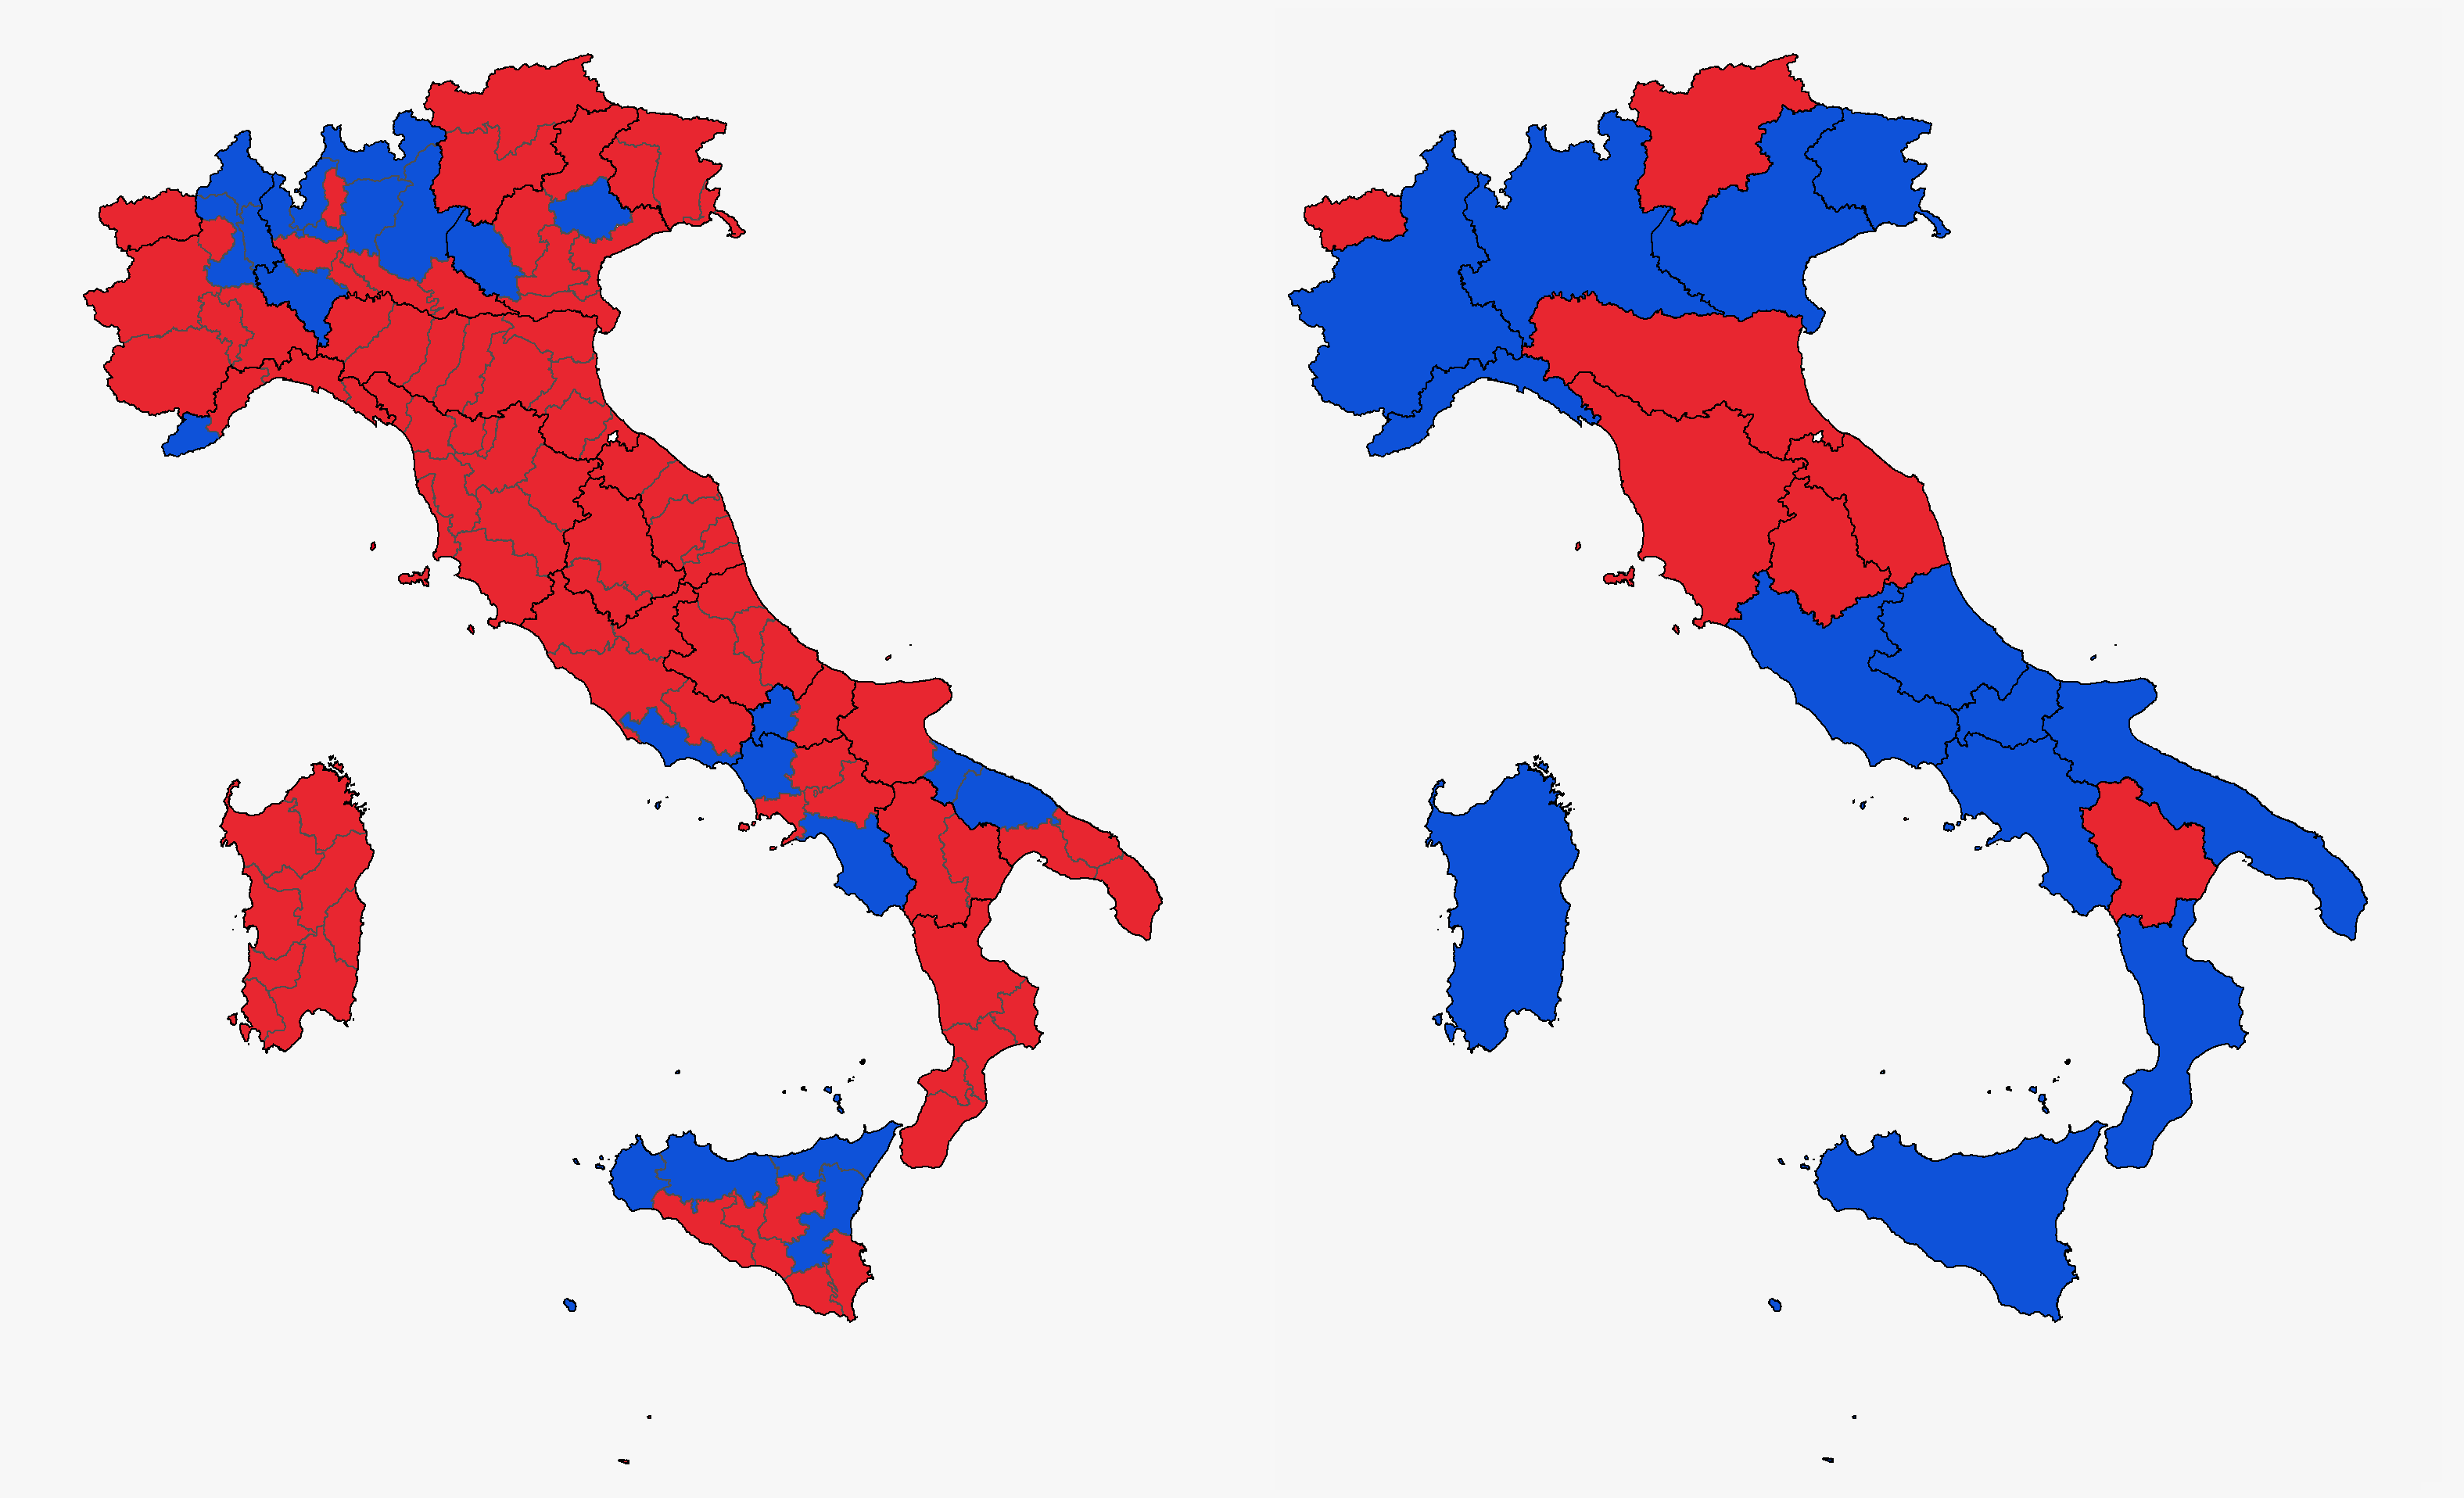 File:Italian 2006 elections.png - Wikimedia Commons